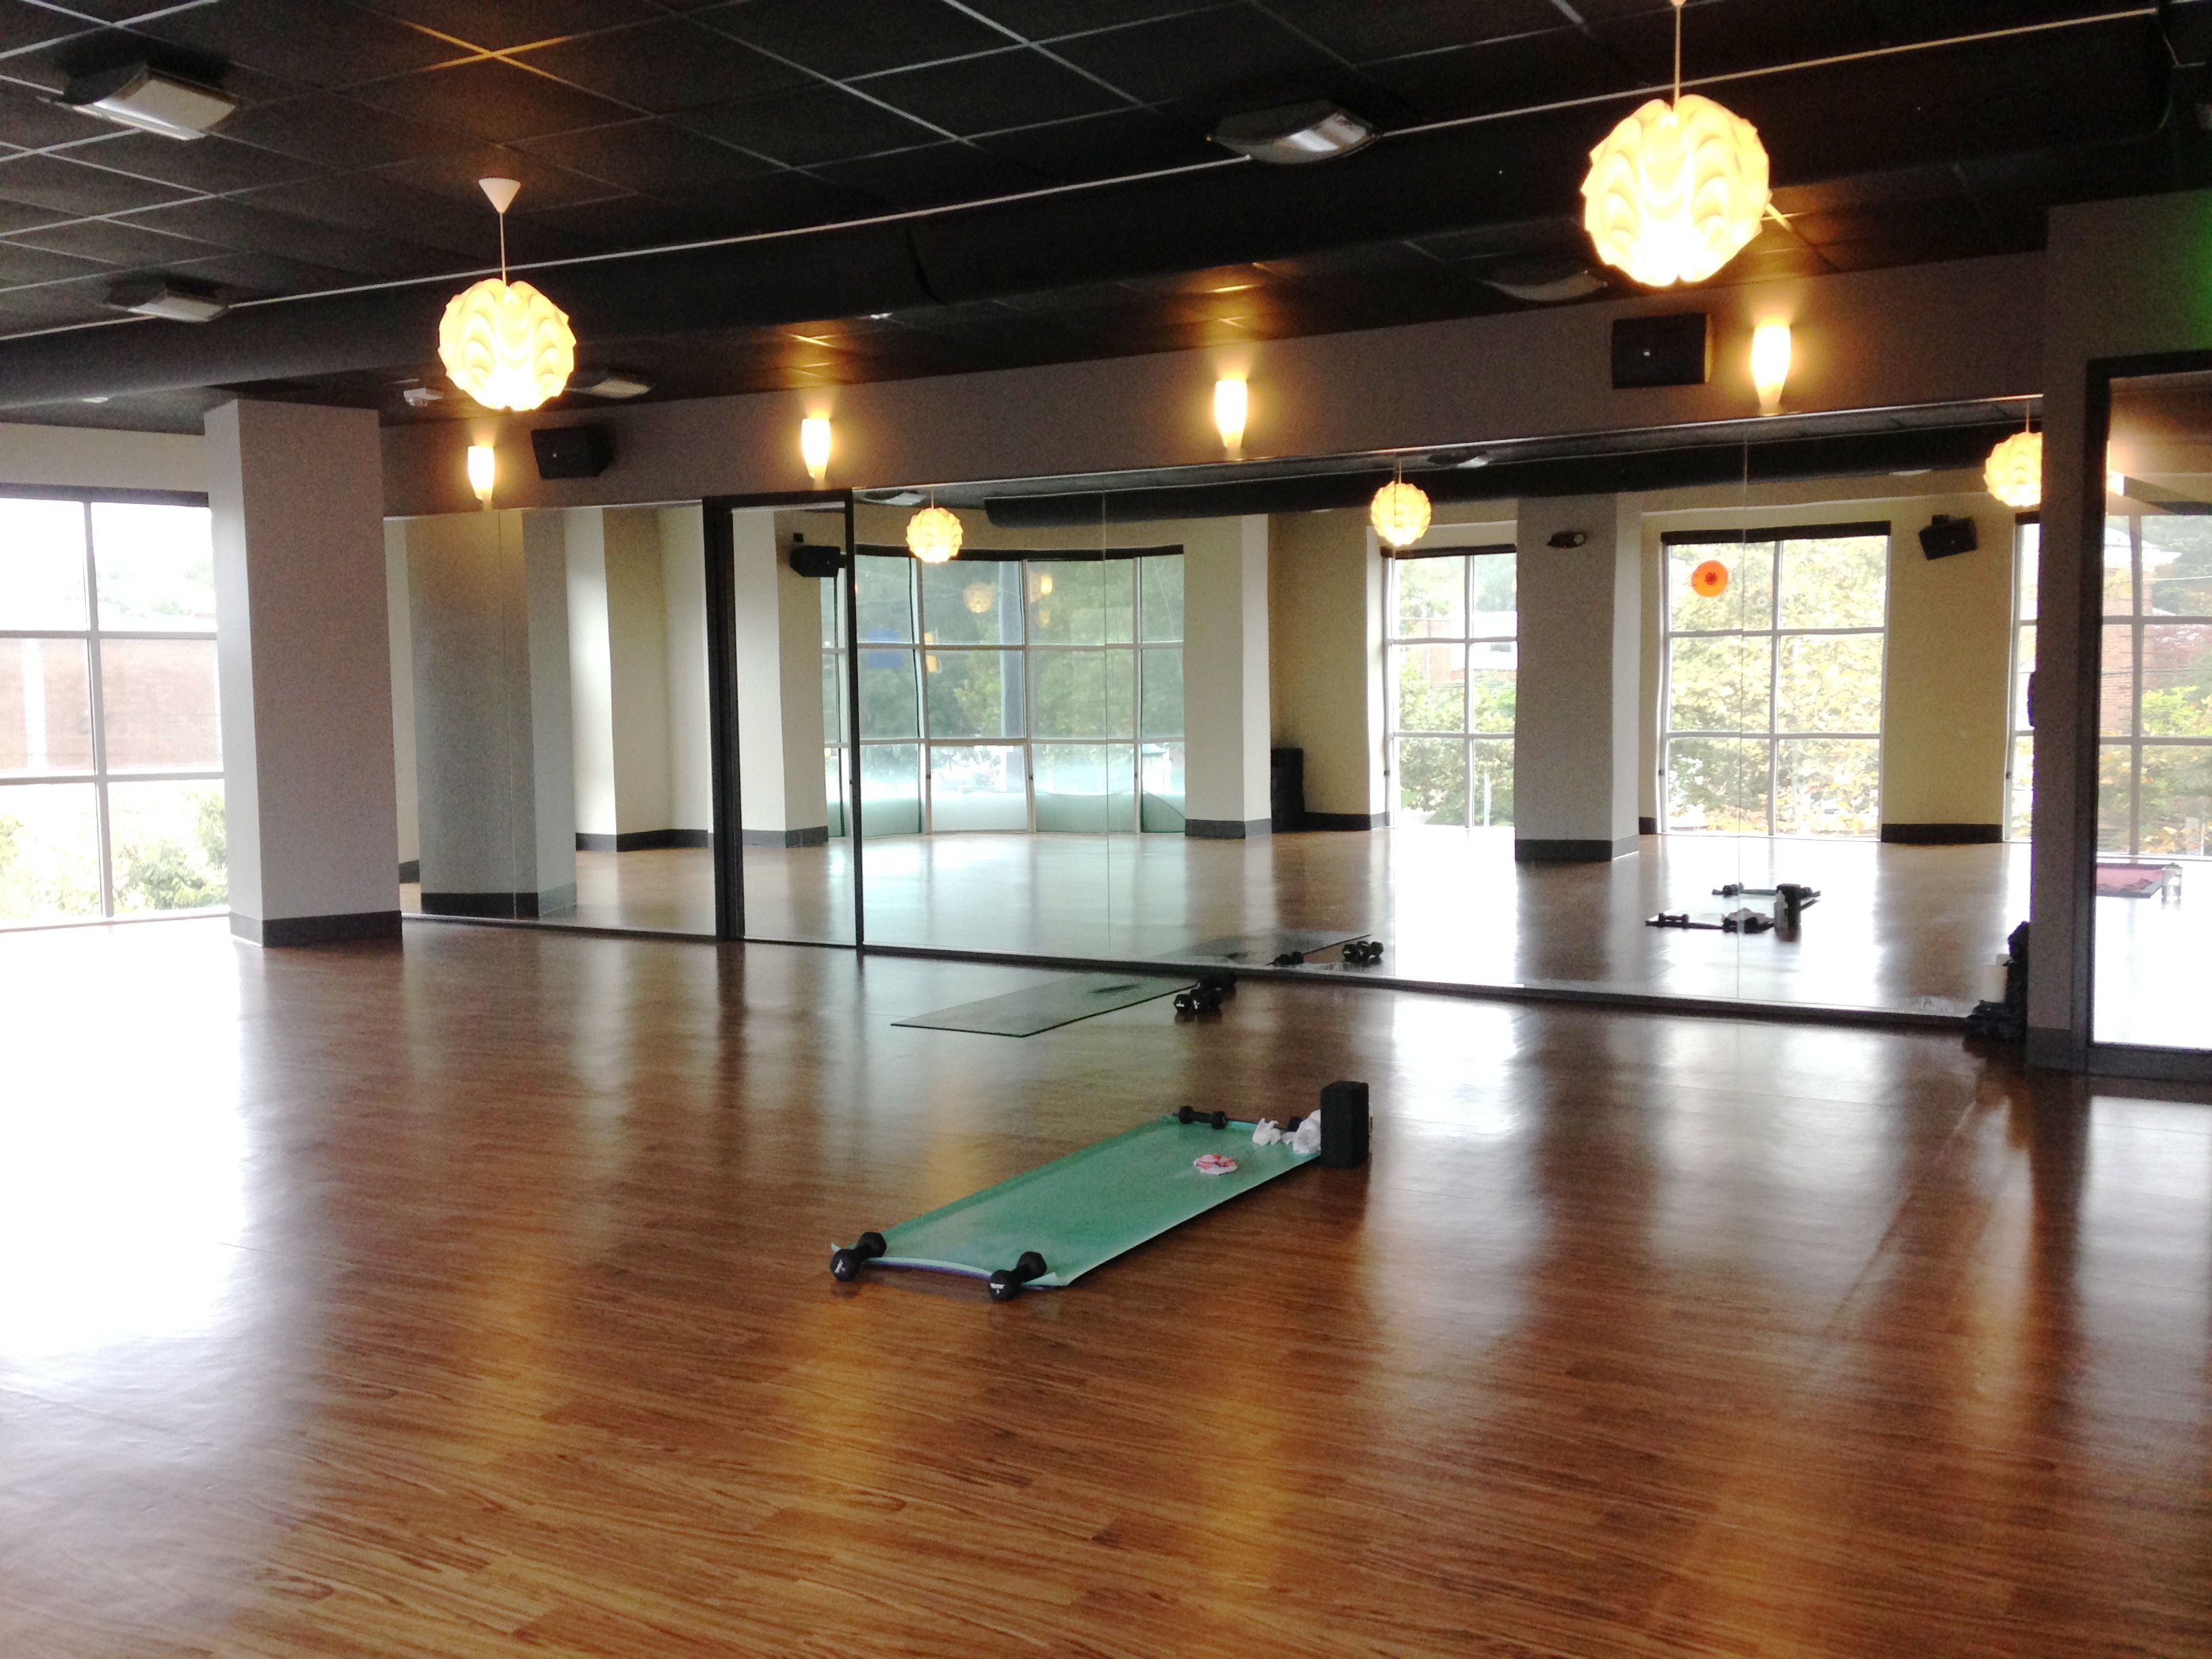 Barn Pendants are Key Component in Facility's Industrial Redesign   Modern  office design, Office designs  yogalokafit Sacramentos Best Yoga Studios